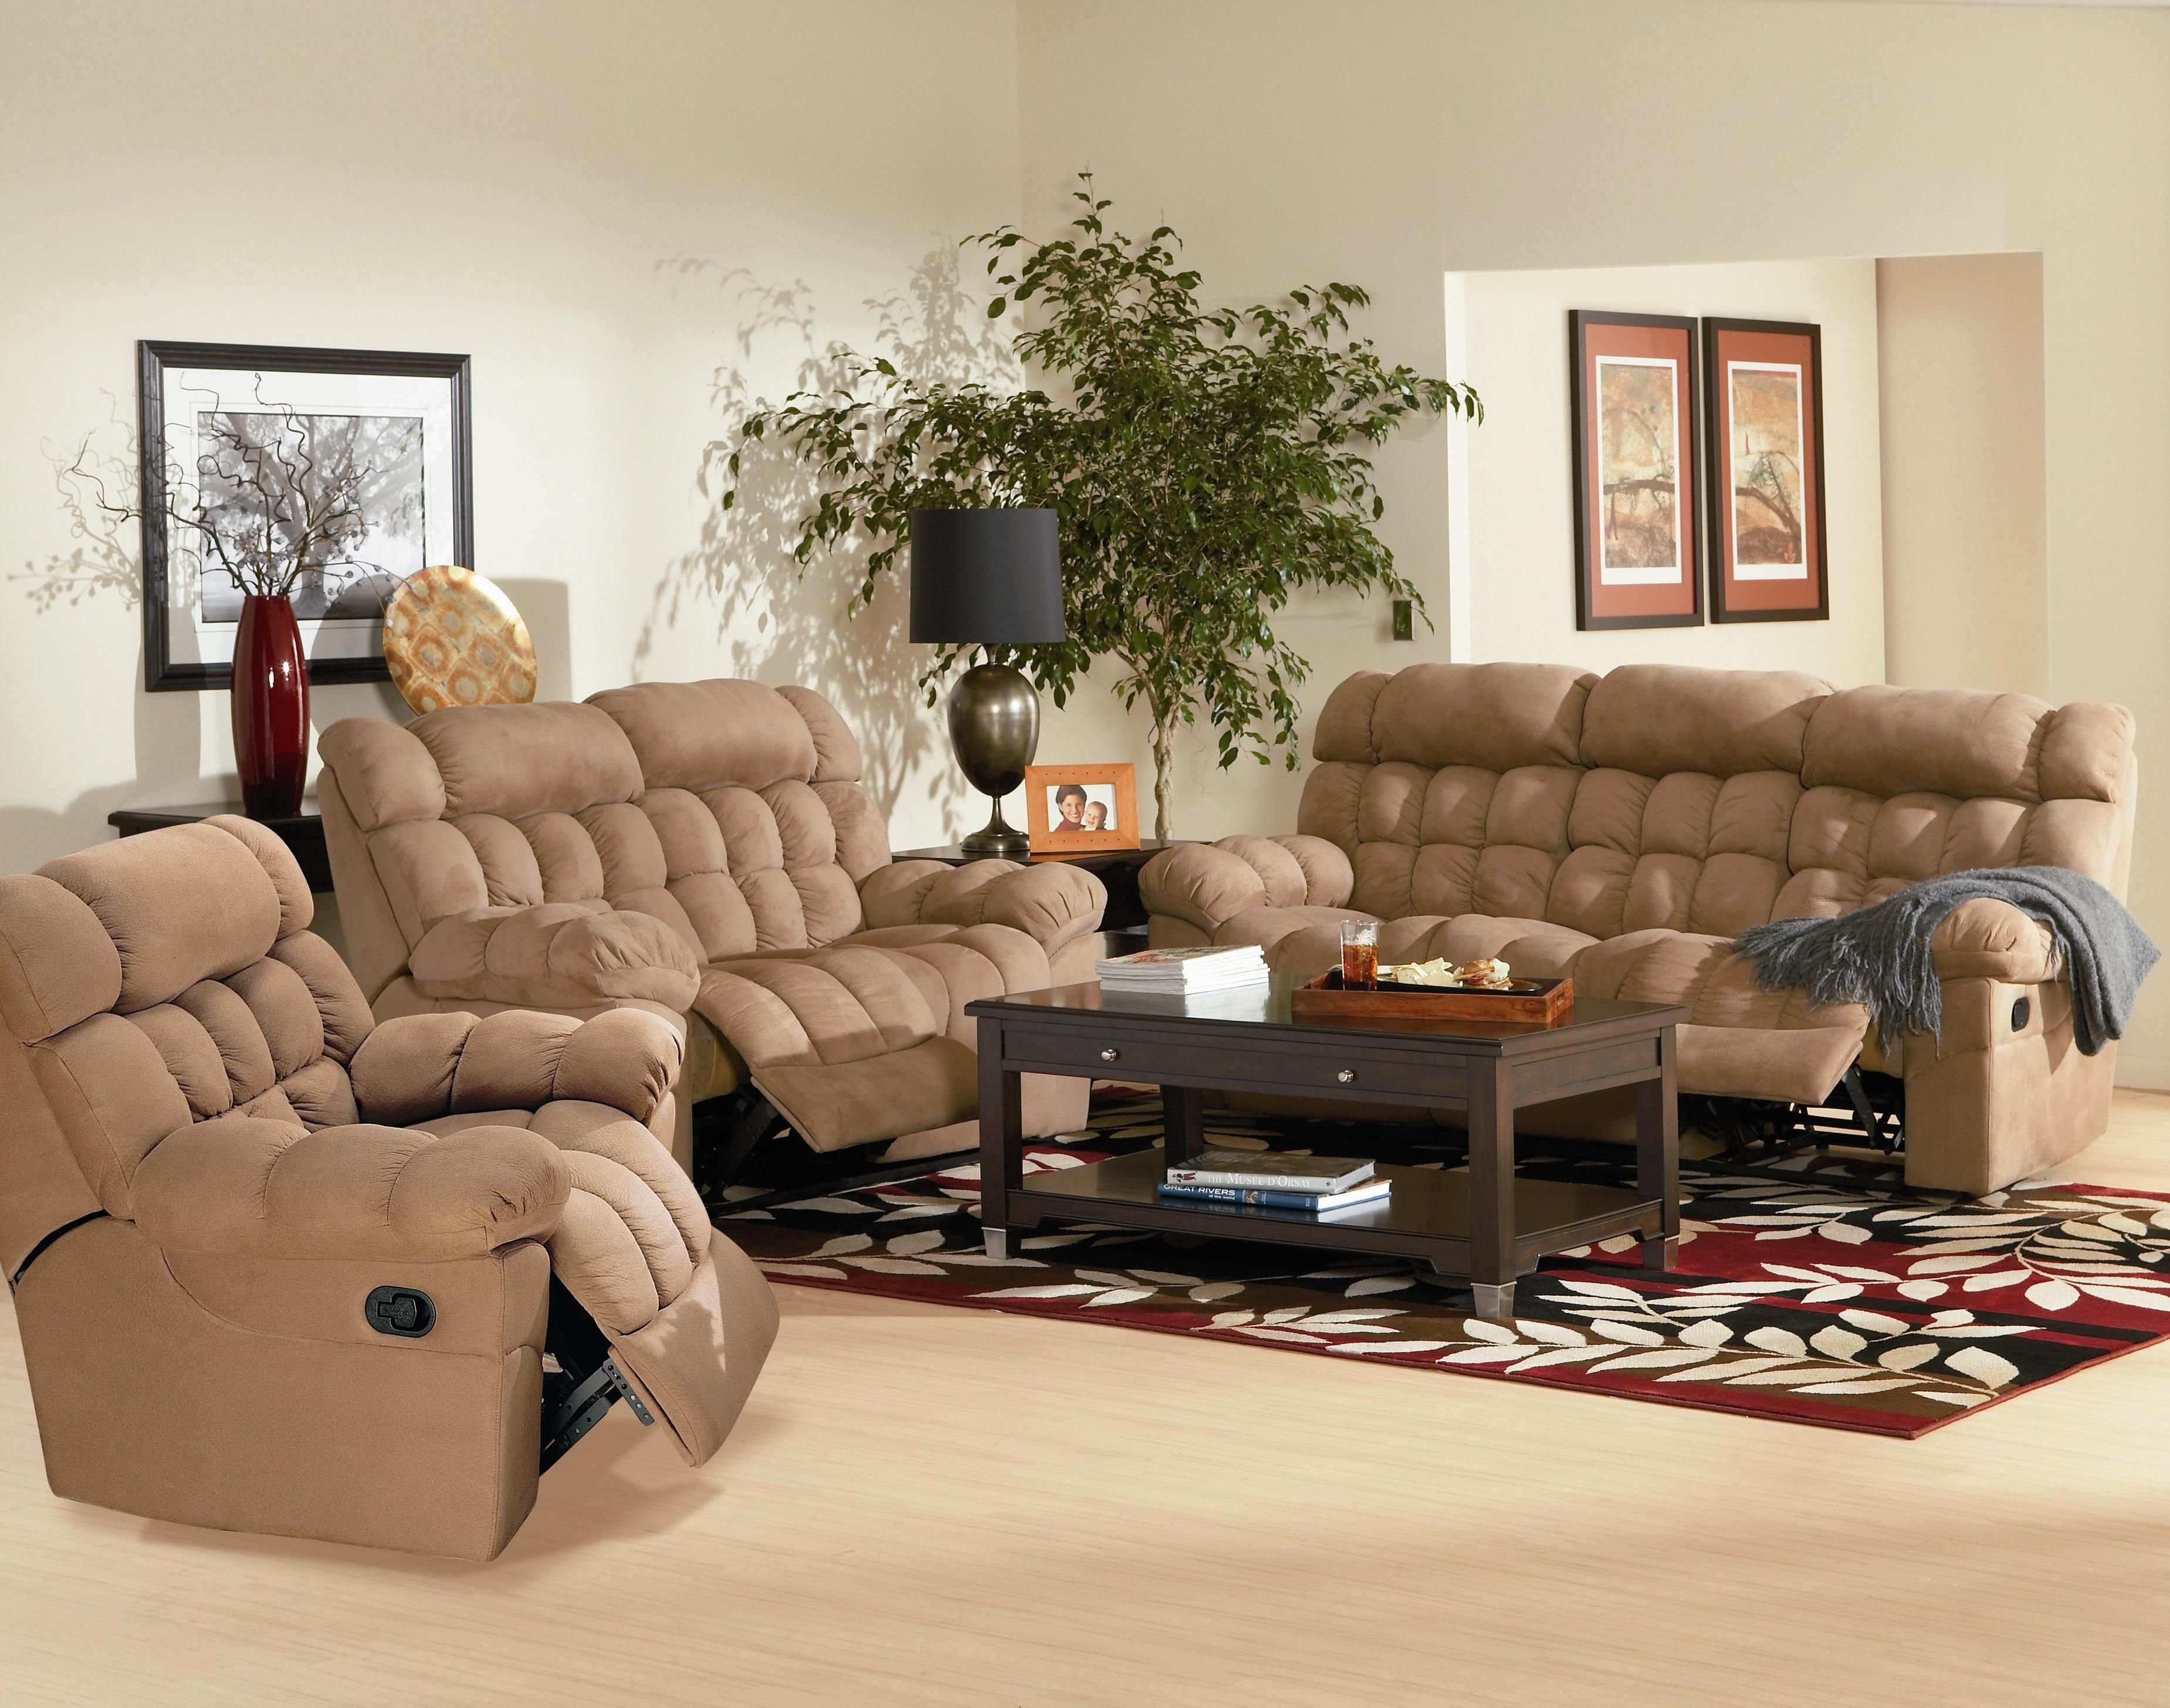 Cool Overstuffed Sofa , Luxury Overstuffed Sofa 12 With Additional Living  Room Sofa Inspiration With Overstuffed